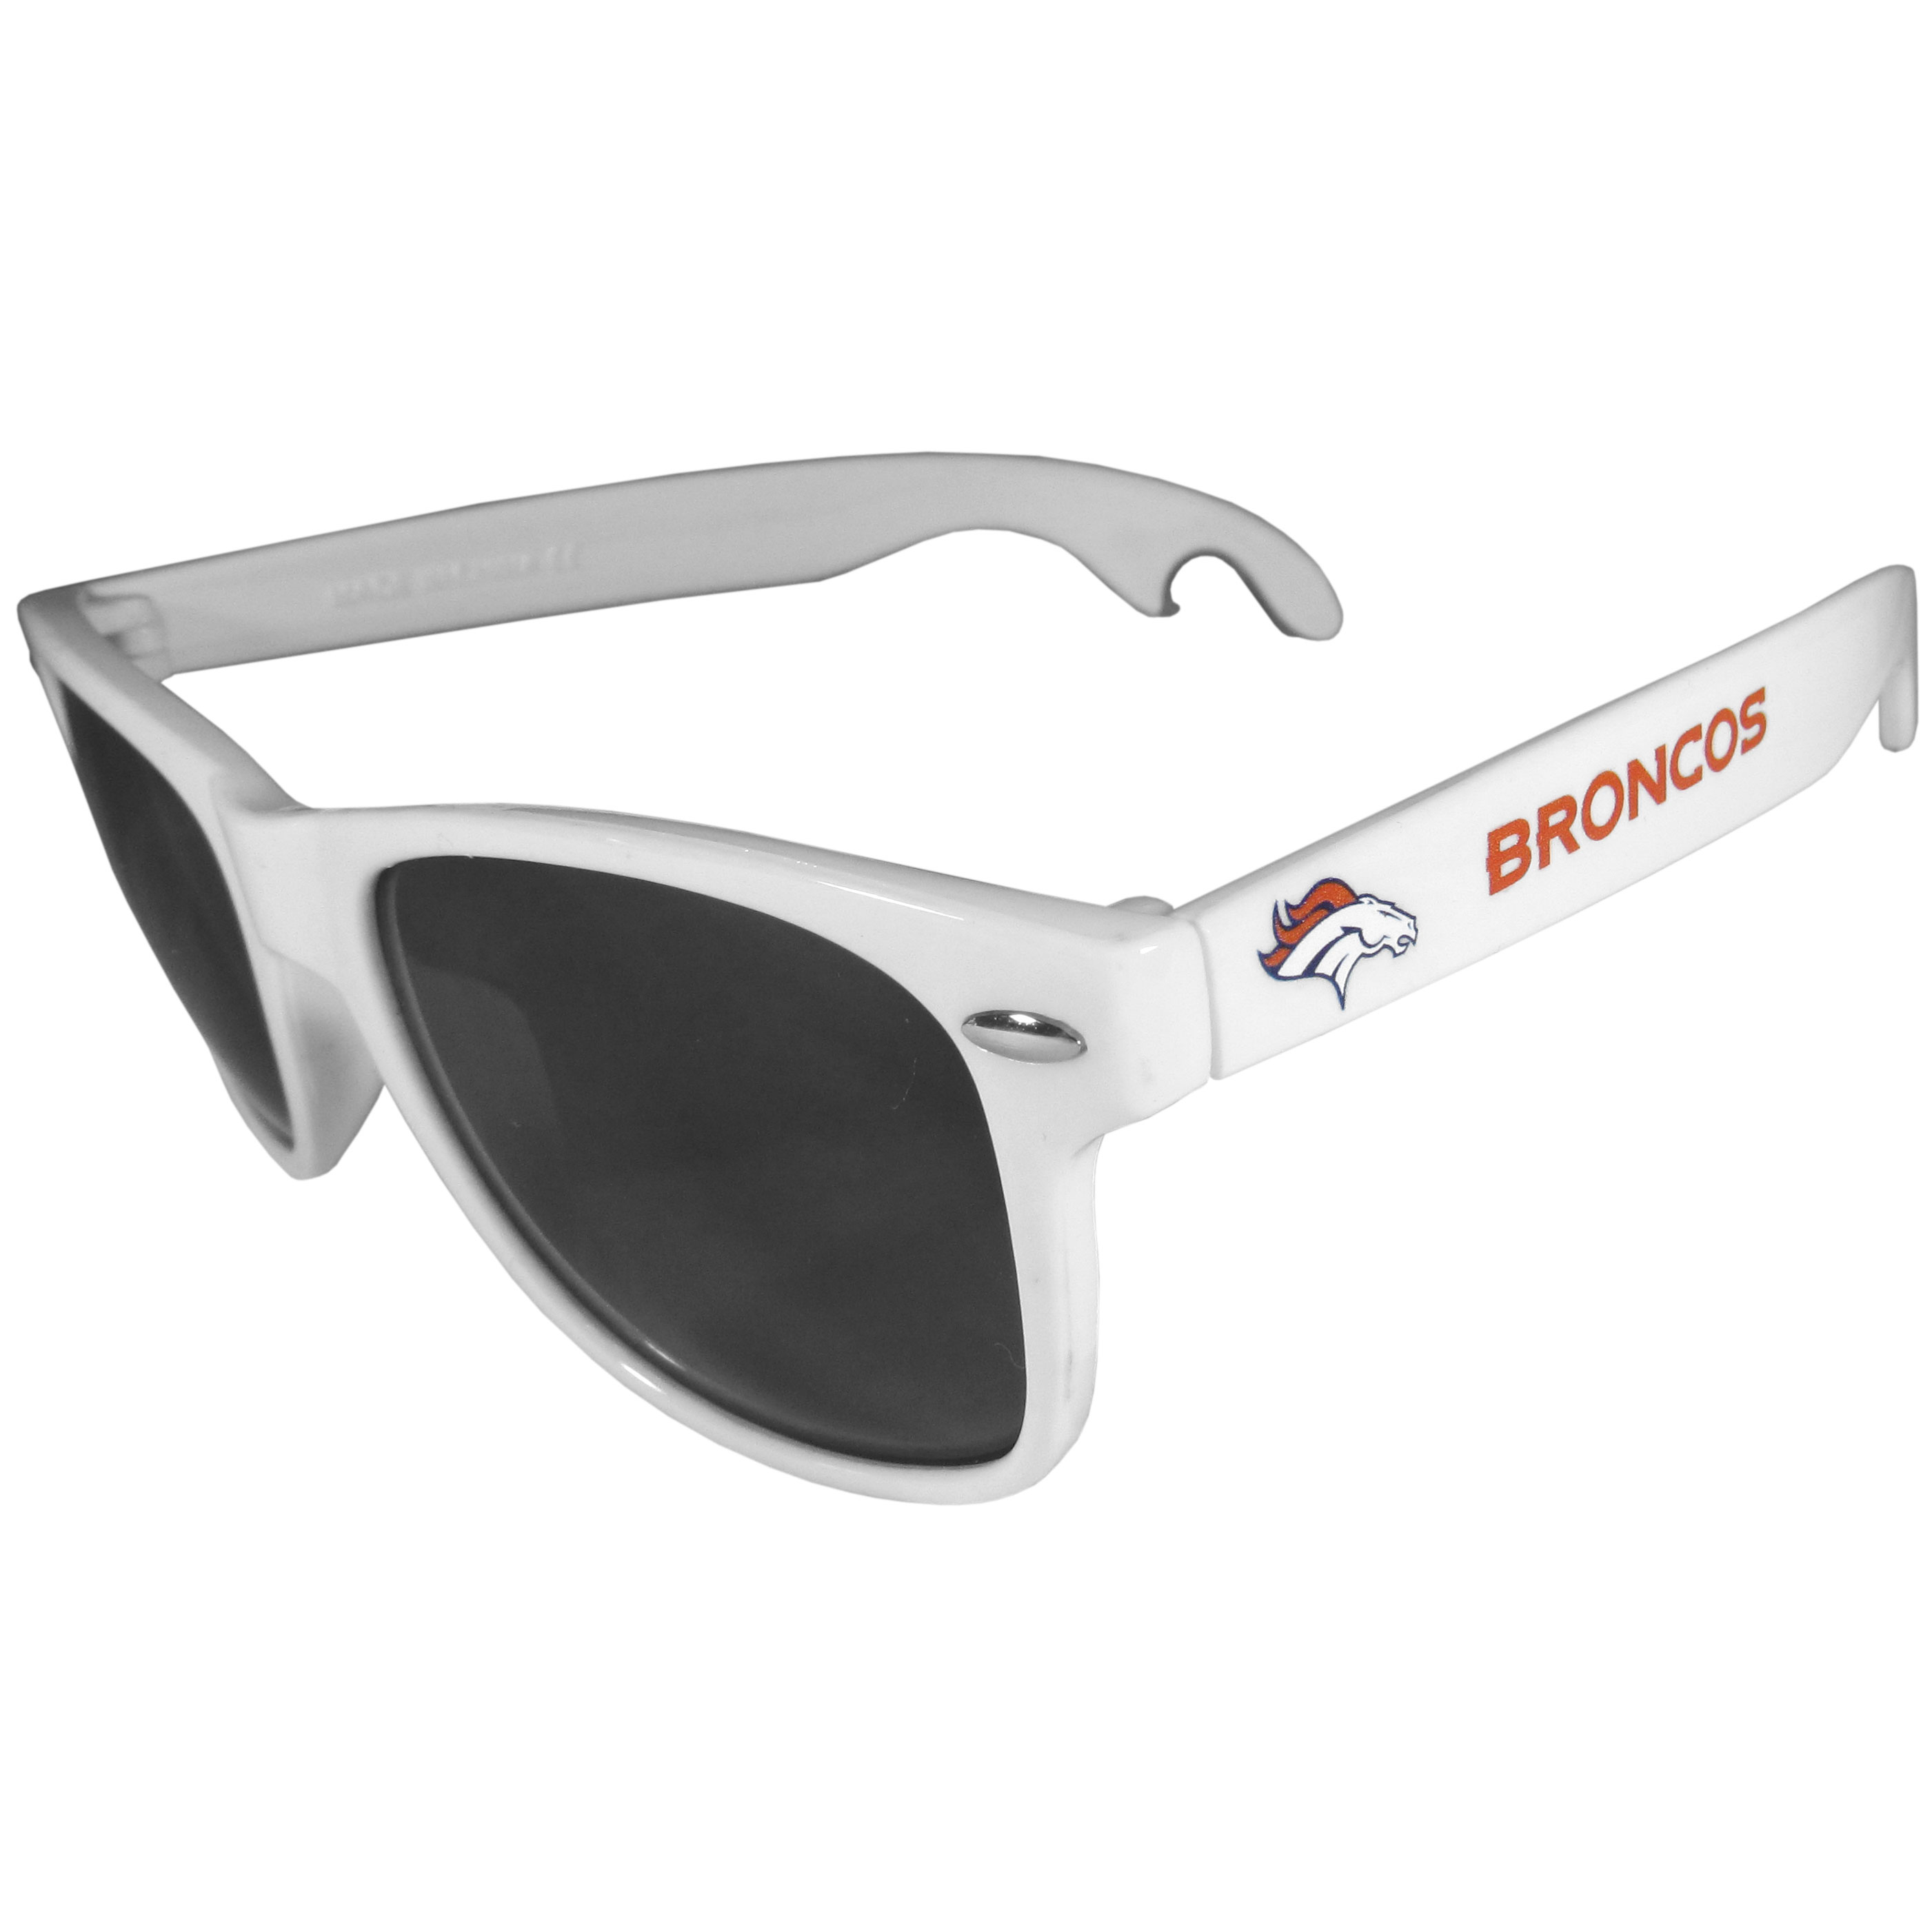 Denver Broncos Beachfarer Bottle Opener Sunglasses, White - Seriously, these sunglasses open bottles! Keep the party going with these amazing Denver Broncos bottle opener sunglasses. The stylish retro frames feature team designs on the arms and functional bottle openers on the end of the arms. Whether you are at the beach or having a backyard BBQ on game day, these shades will keep your eyes protected with 100% UVA/UVB protection and keep you hydrated with the handy bottle opener arms.